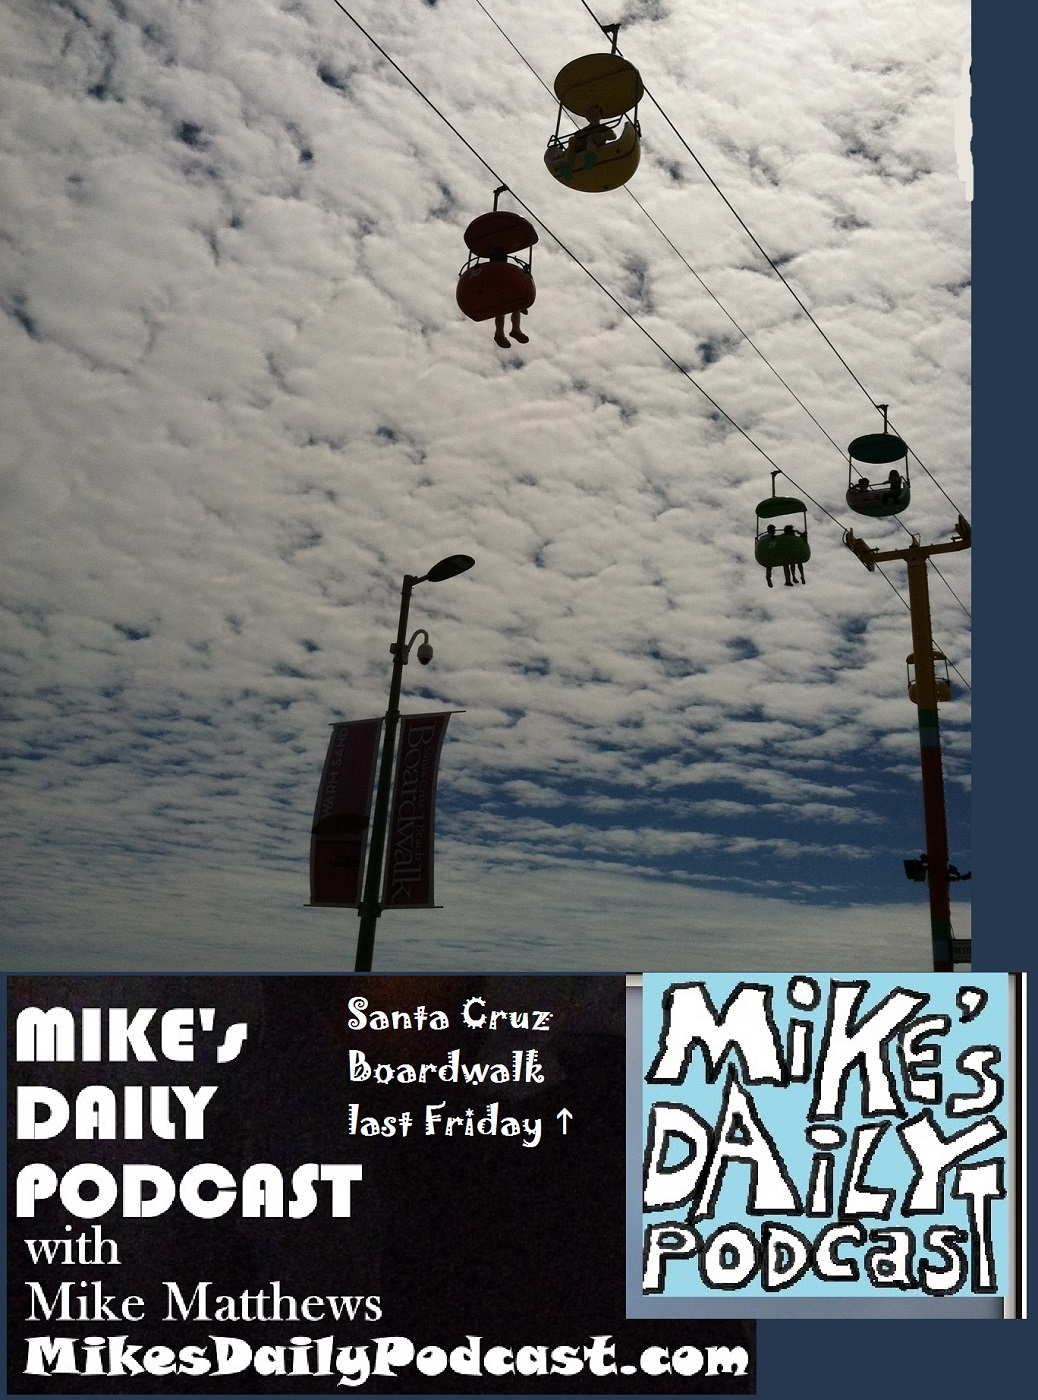 MIKEs DAILY PODCAST 1119 Santa Cruz Boardwalk